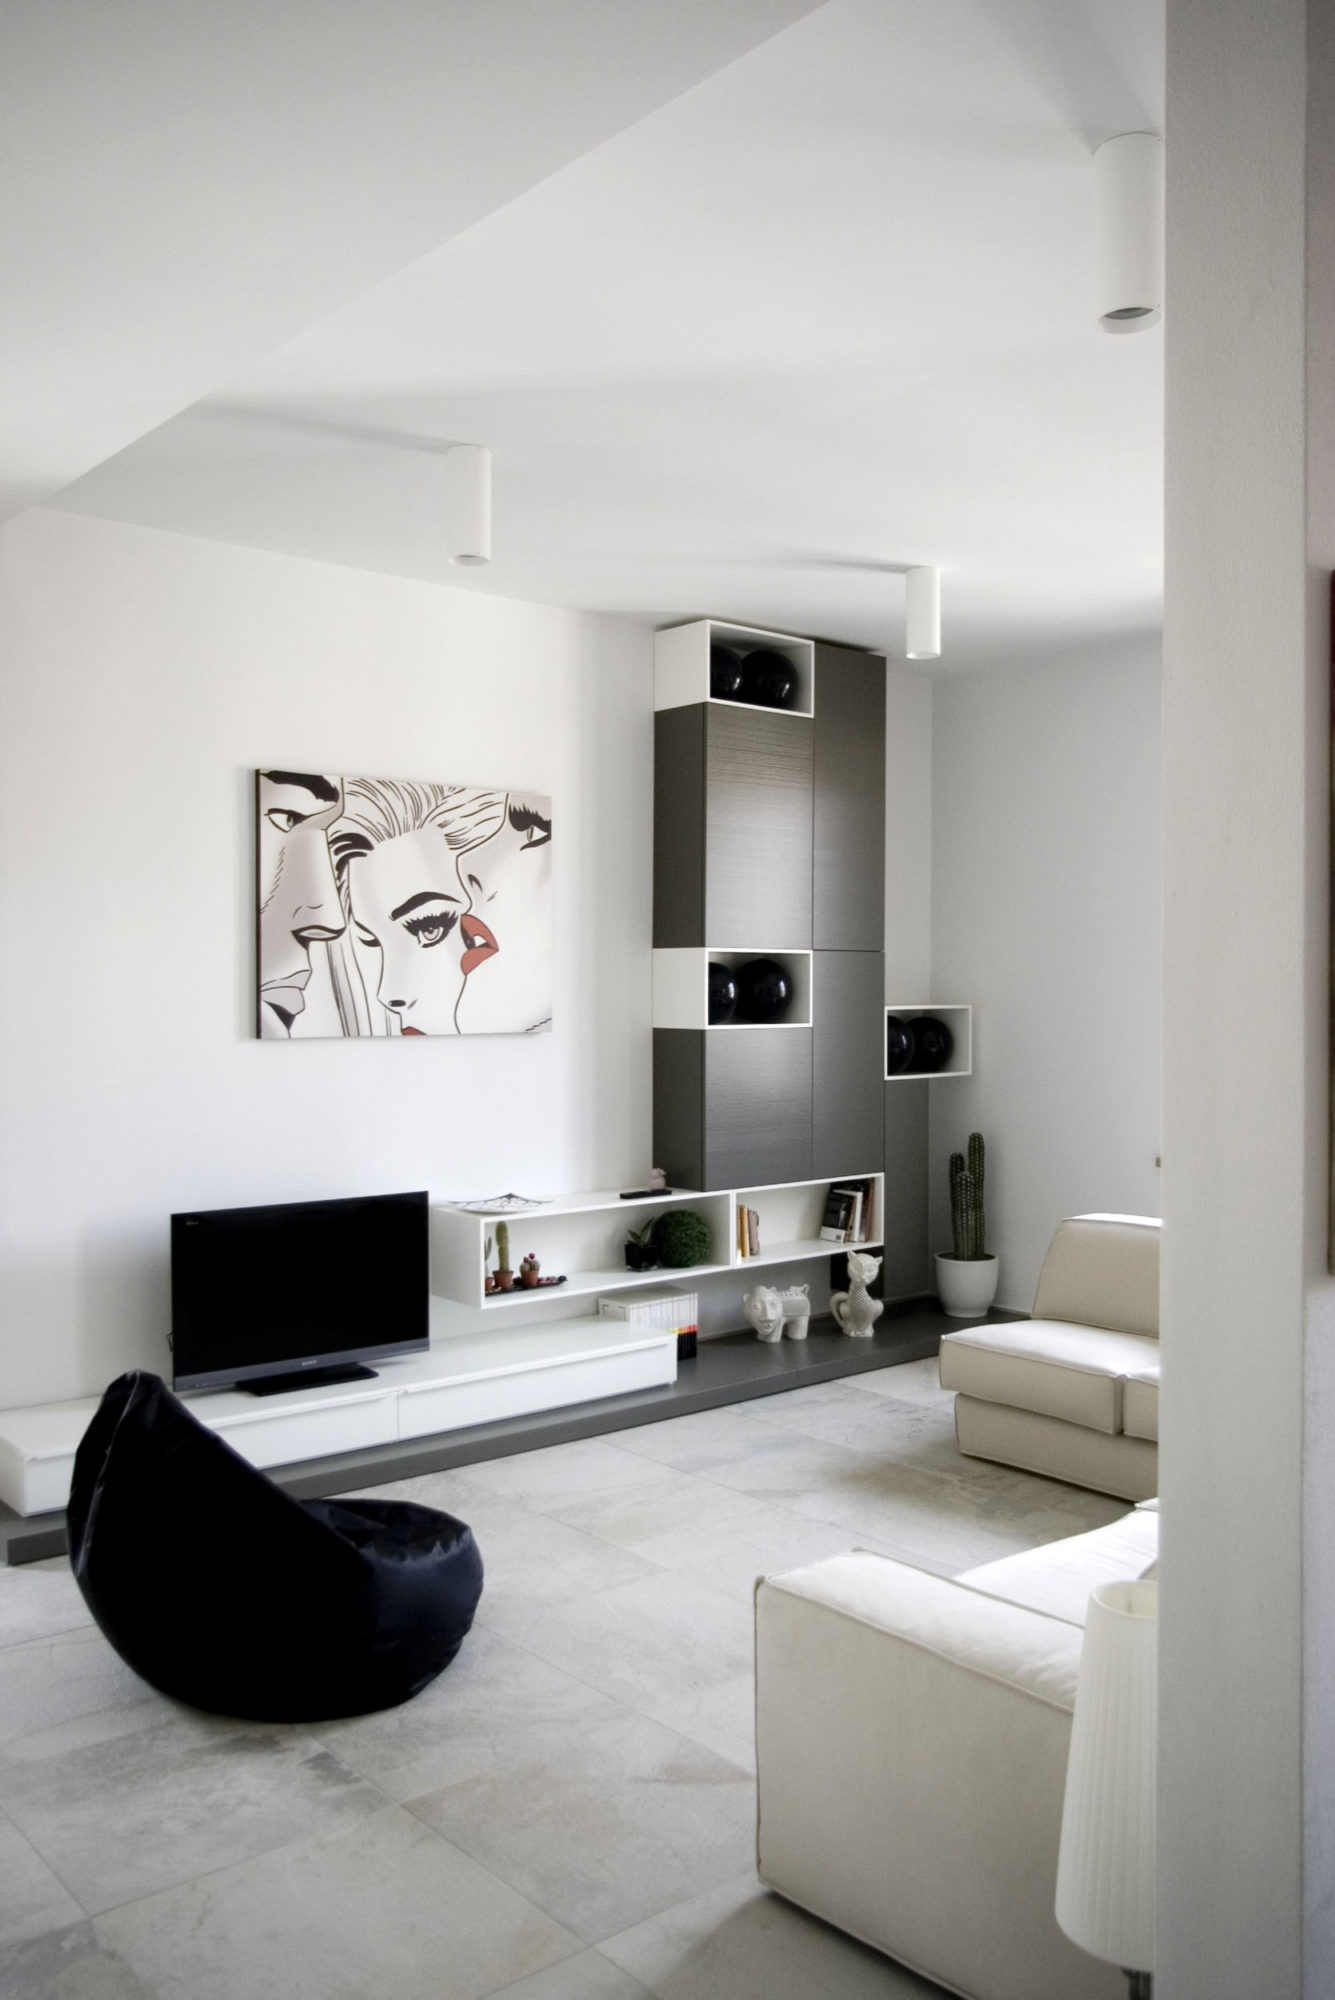 Minimalist interior by msx2 architettura for Studio interior ideas